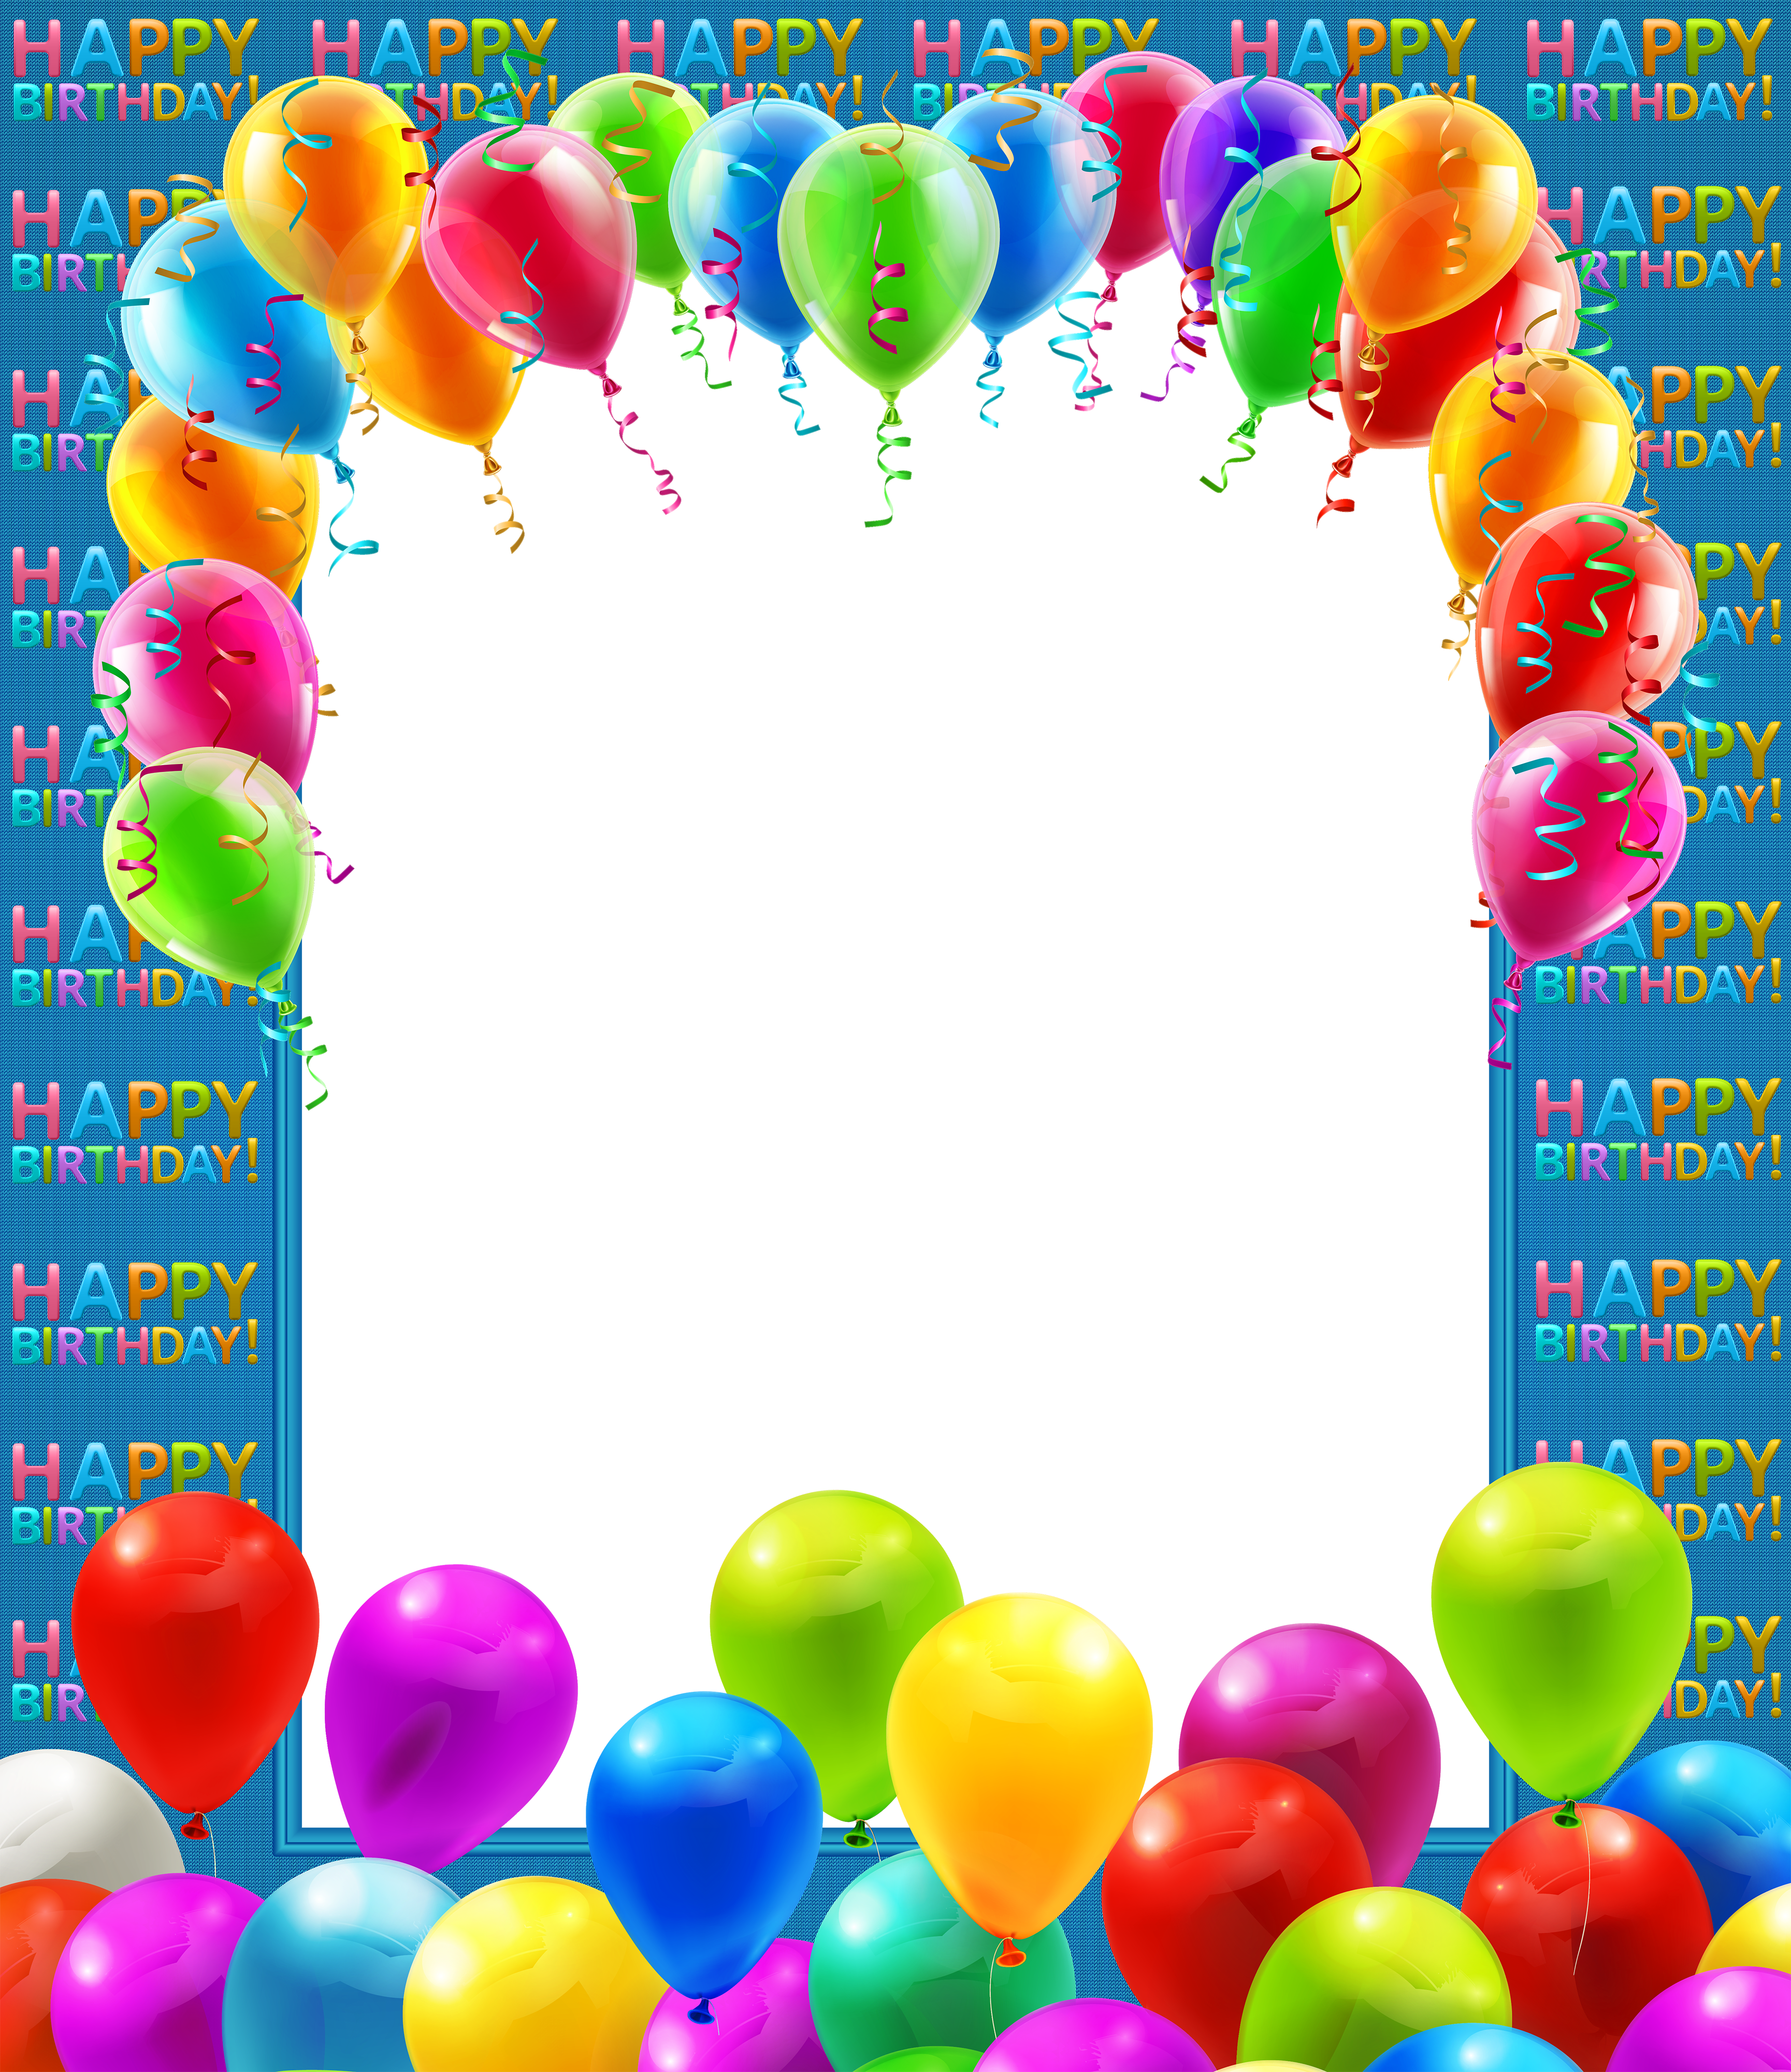 Birthday balloons border png. Happy transparent frame with